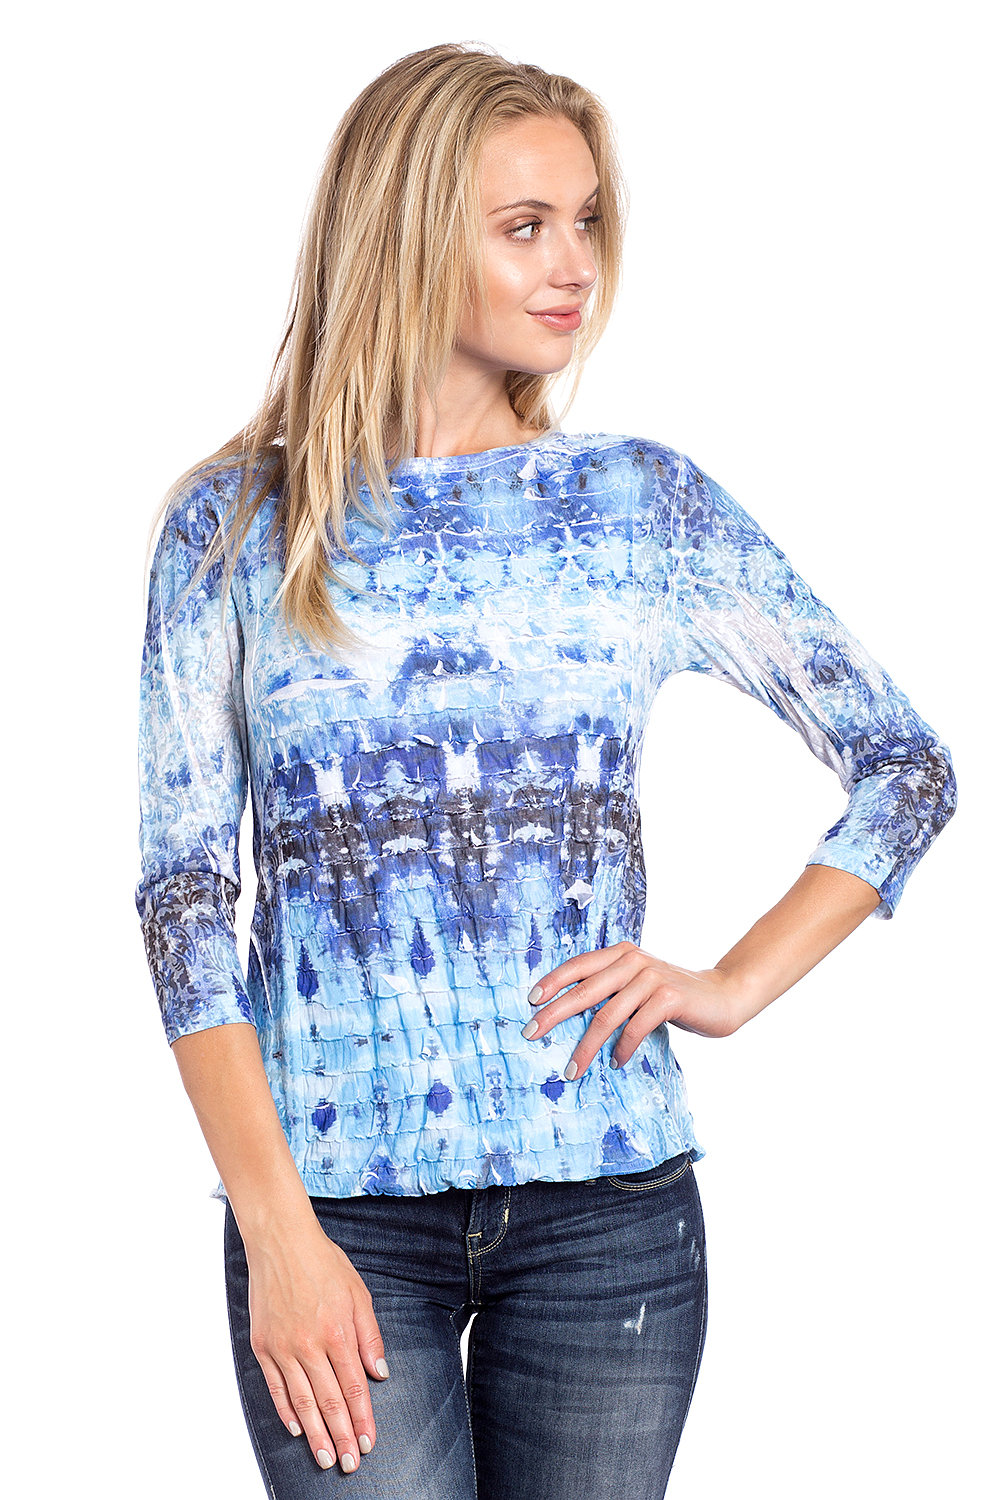 a55bcb1569f Home/Katina Marie/Burnout Cardigan, Tunics and Tops. PRINTED TOP RFT791-3  MULTI